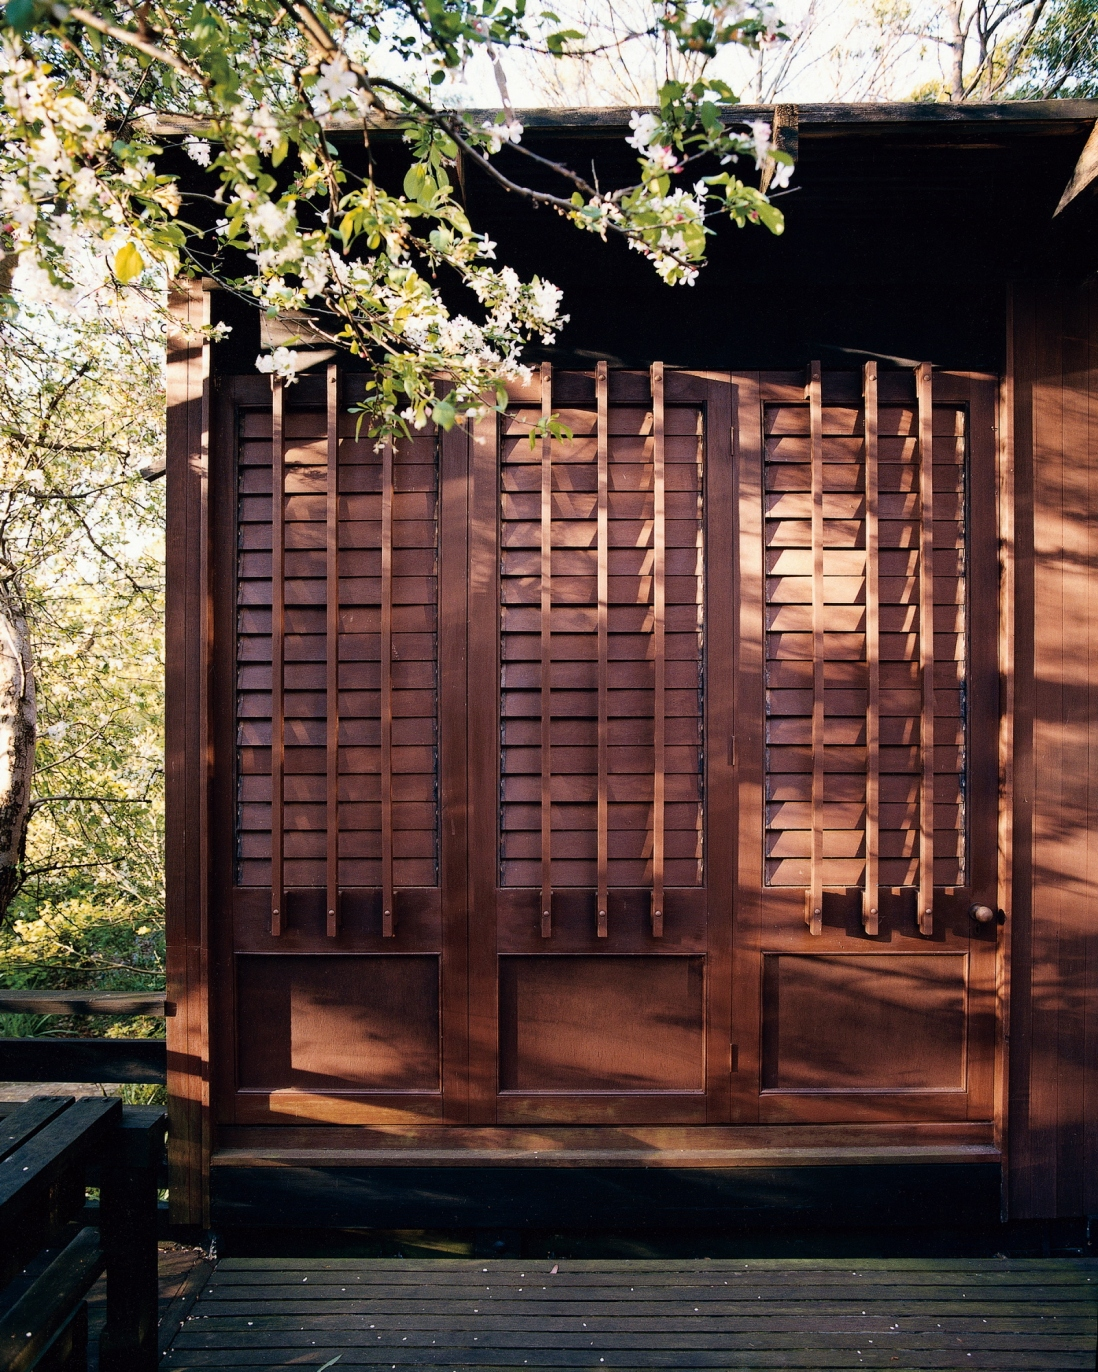 This is a photograph of a dark timber slatted exterior screen sitting on a deck with tree branches in shot on the left side